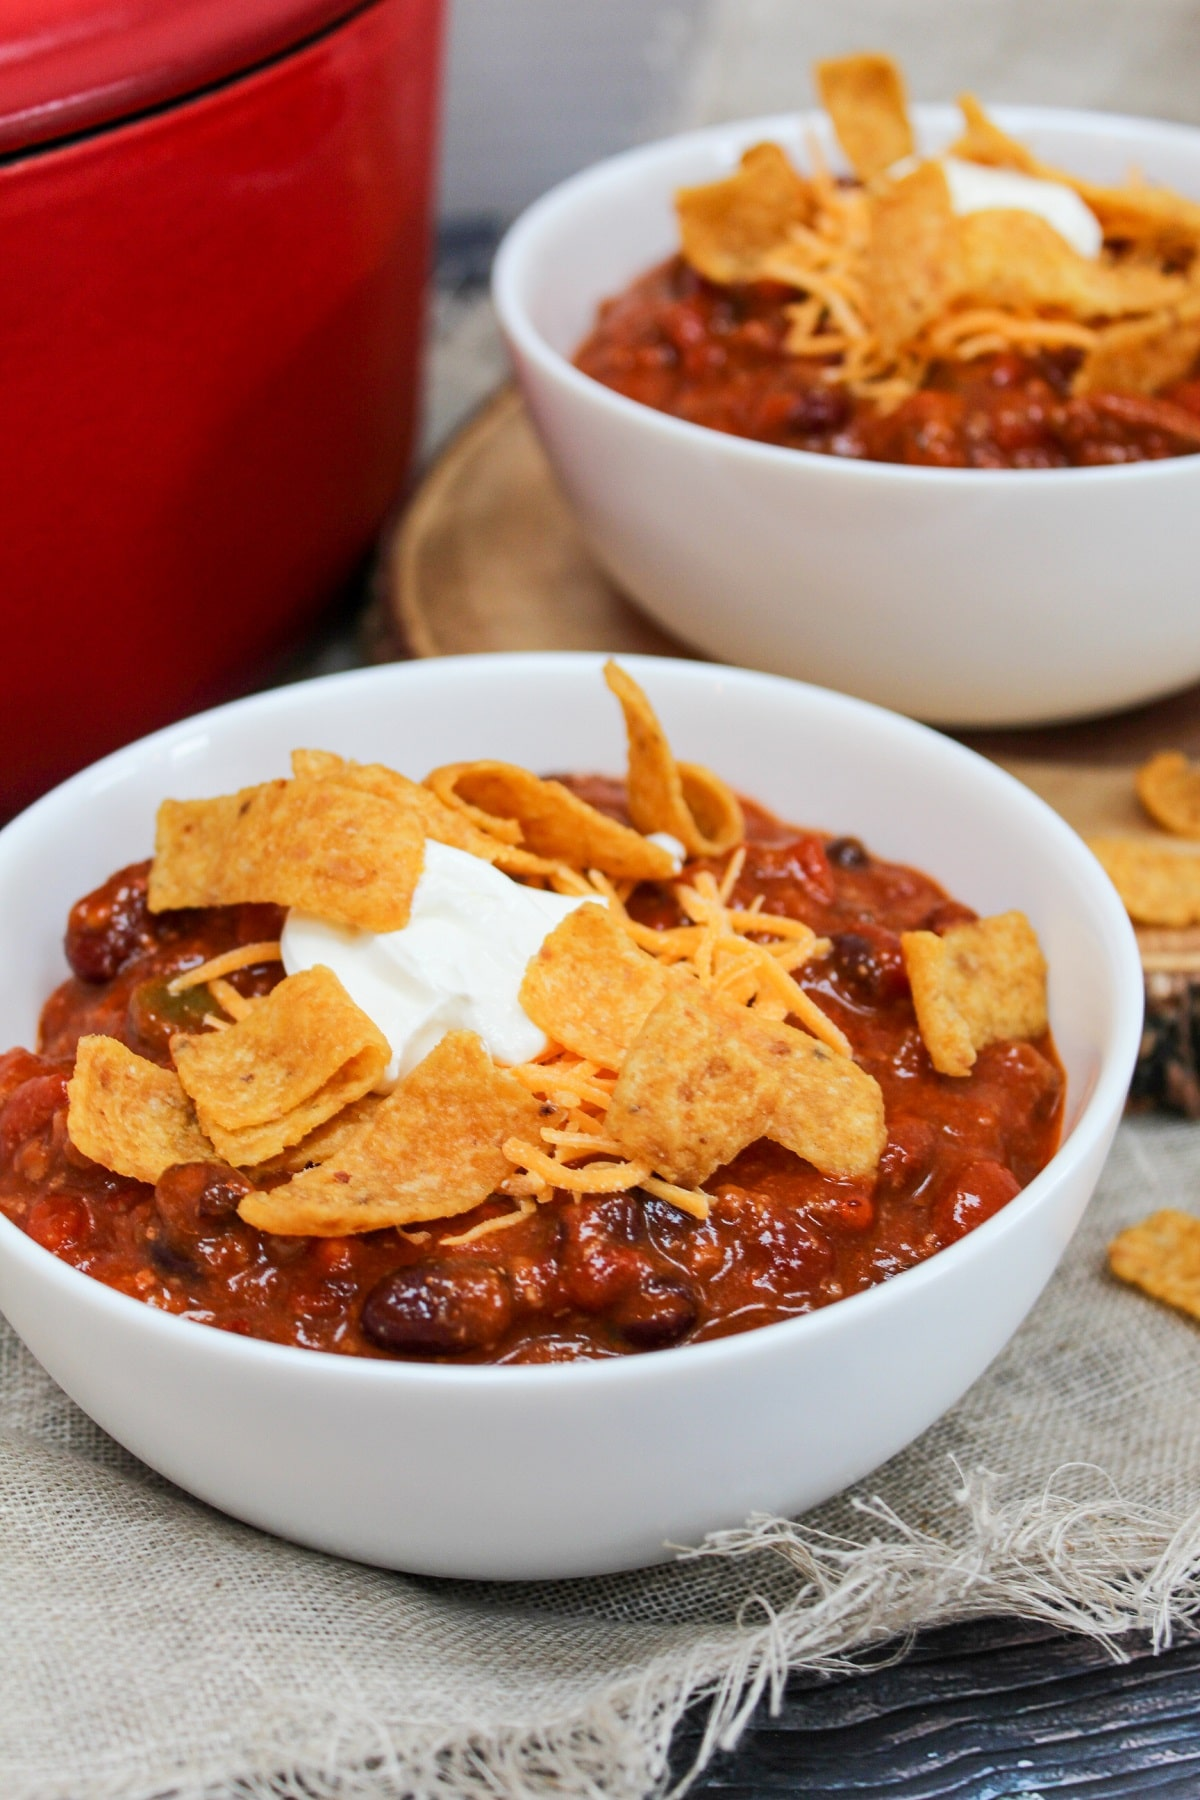 chili in a bowl with corn chips